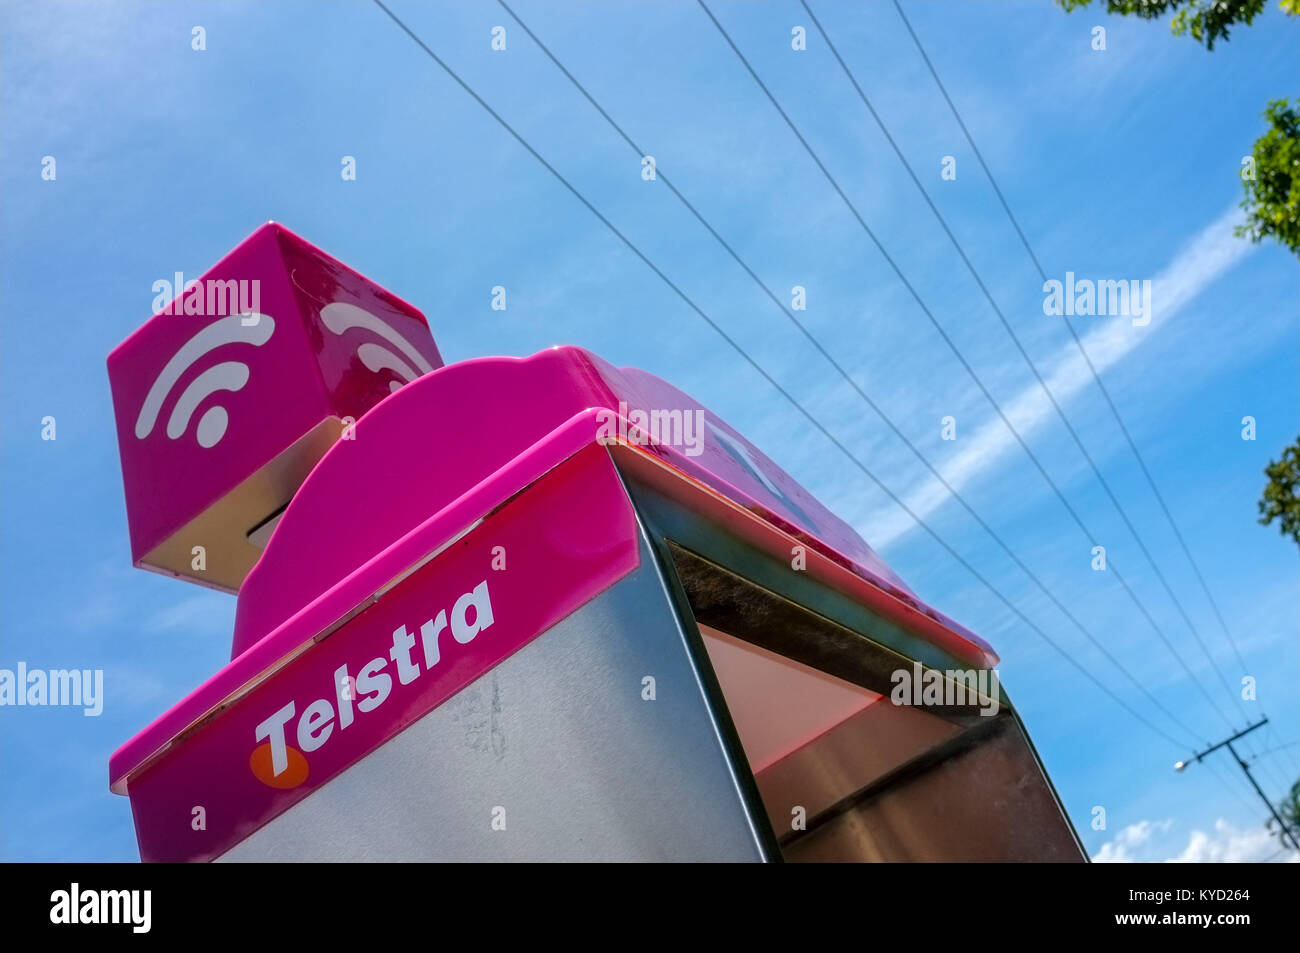 The top of a Telstra public phone booth, which double as a Wi Fi hot spot. - Stock Image